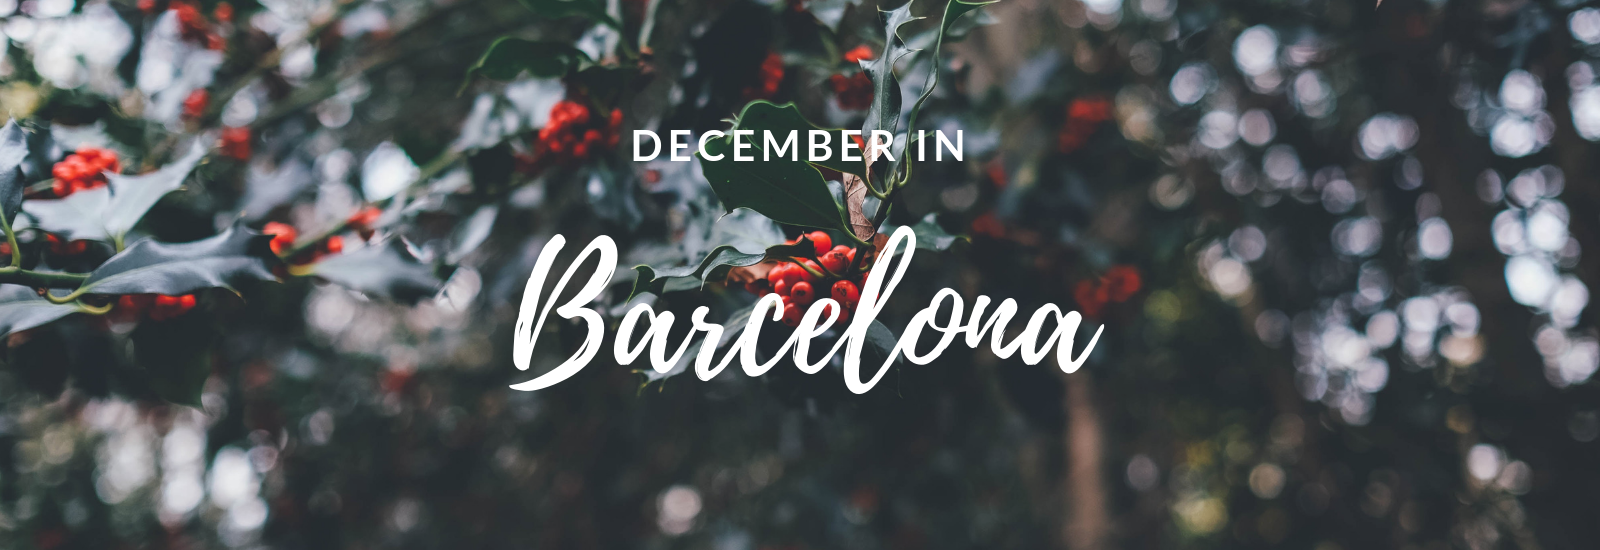 December in Barcelona